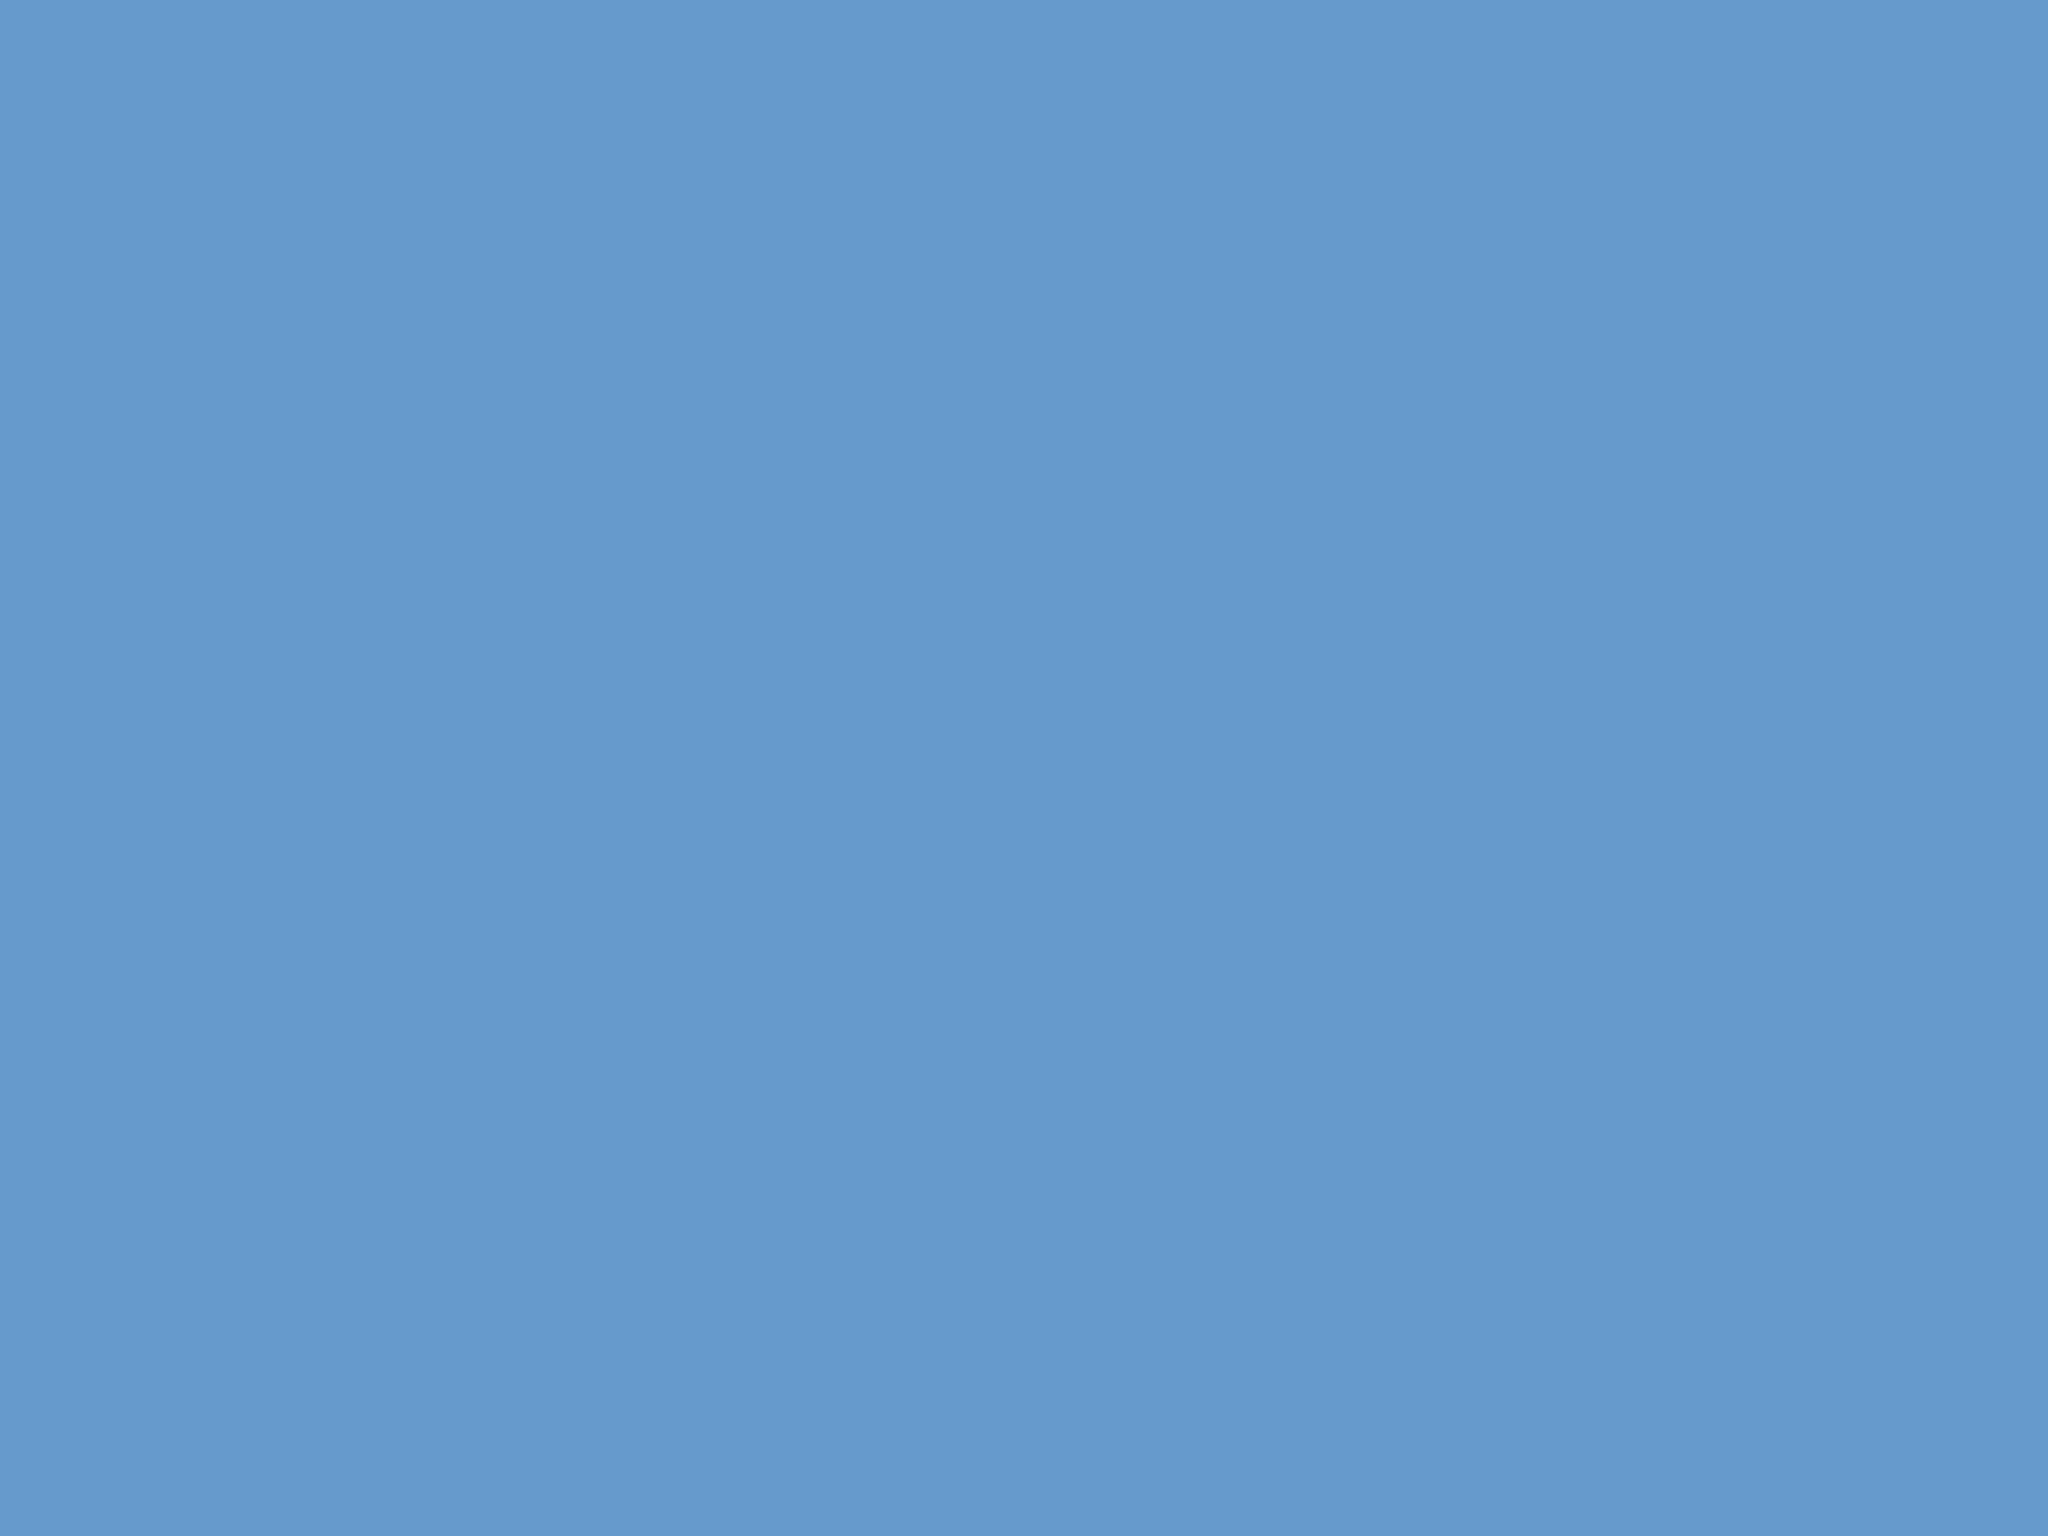 2048x1536 Blue-gray Solid Color Background